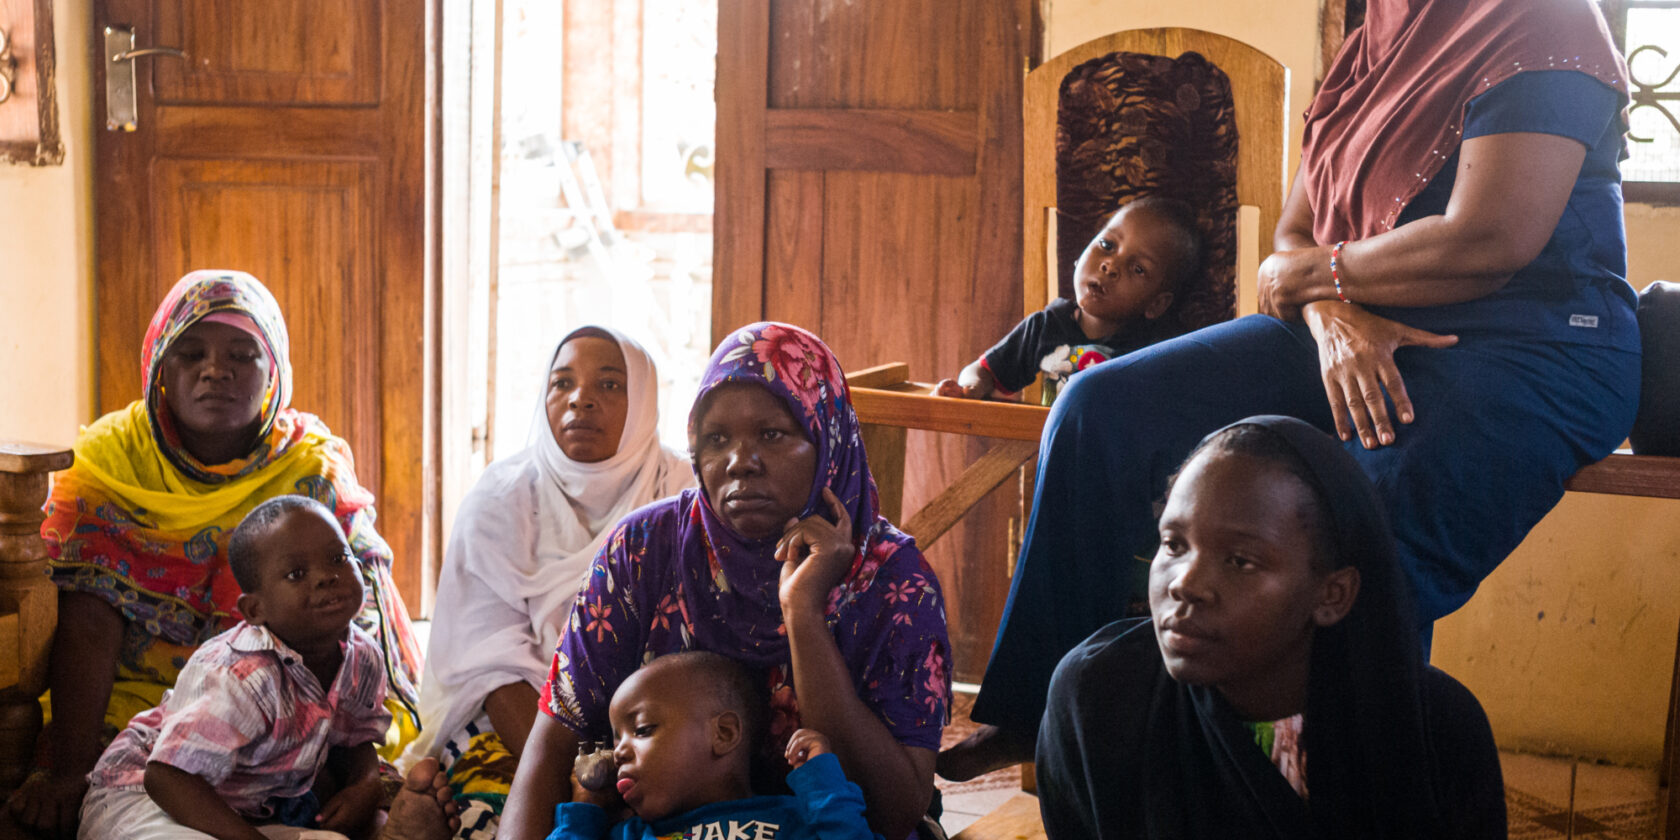 Caregivers and children in the family home